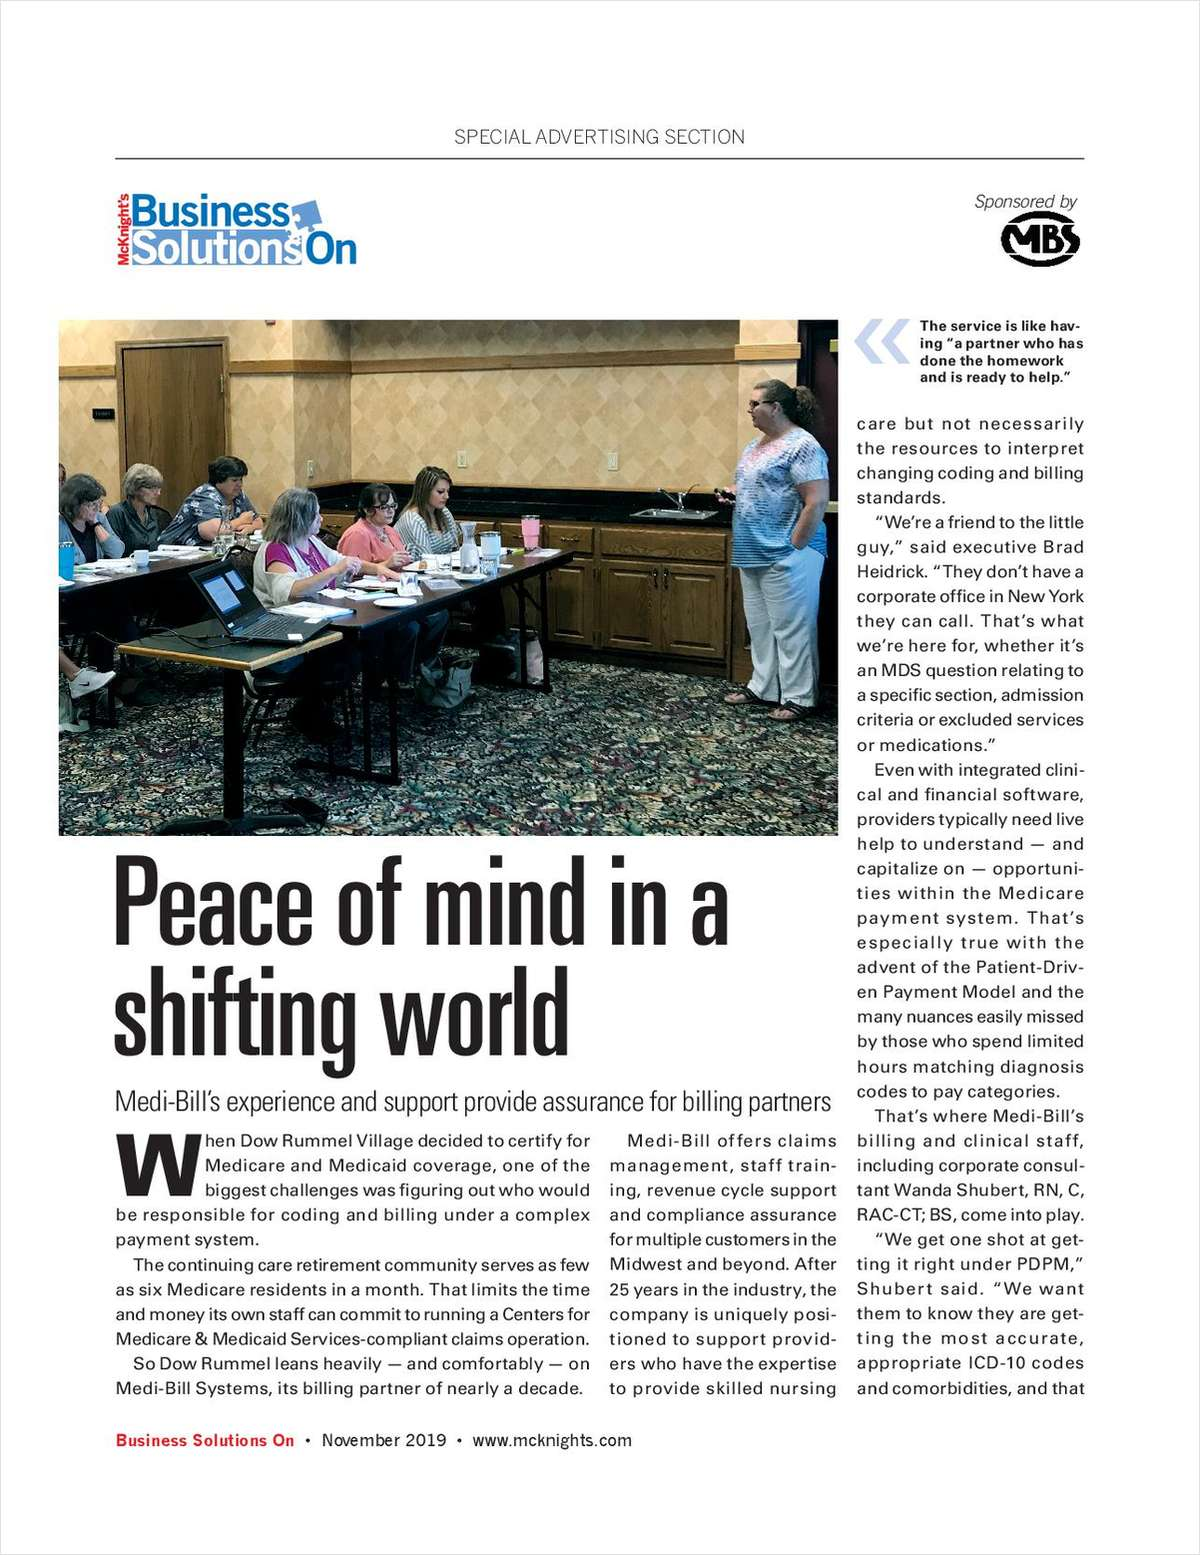 Peace of Mind in a Shifting World